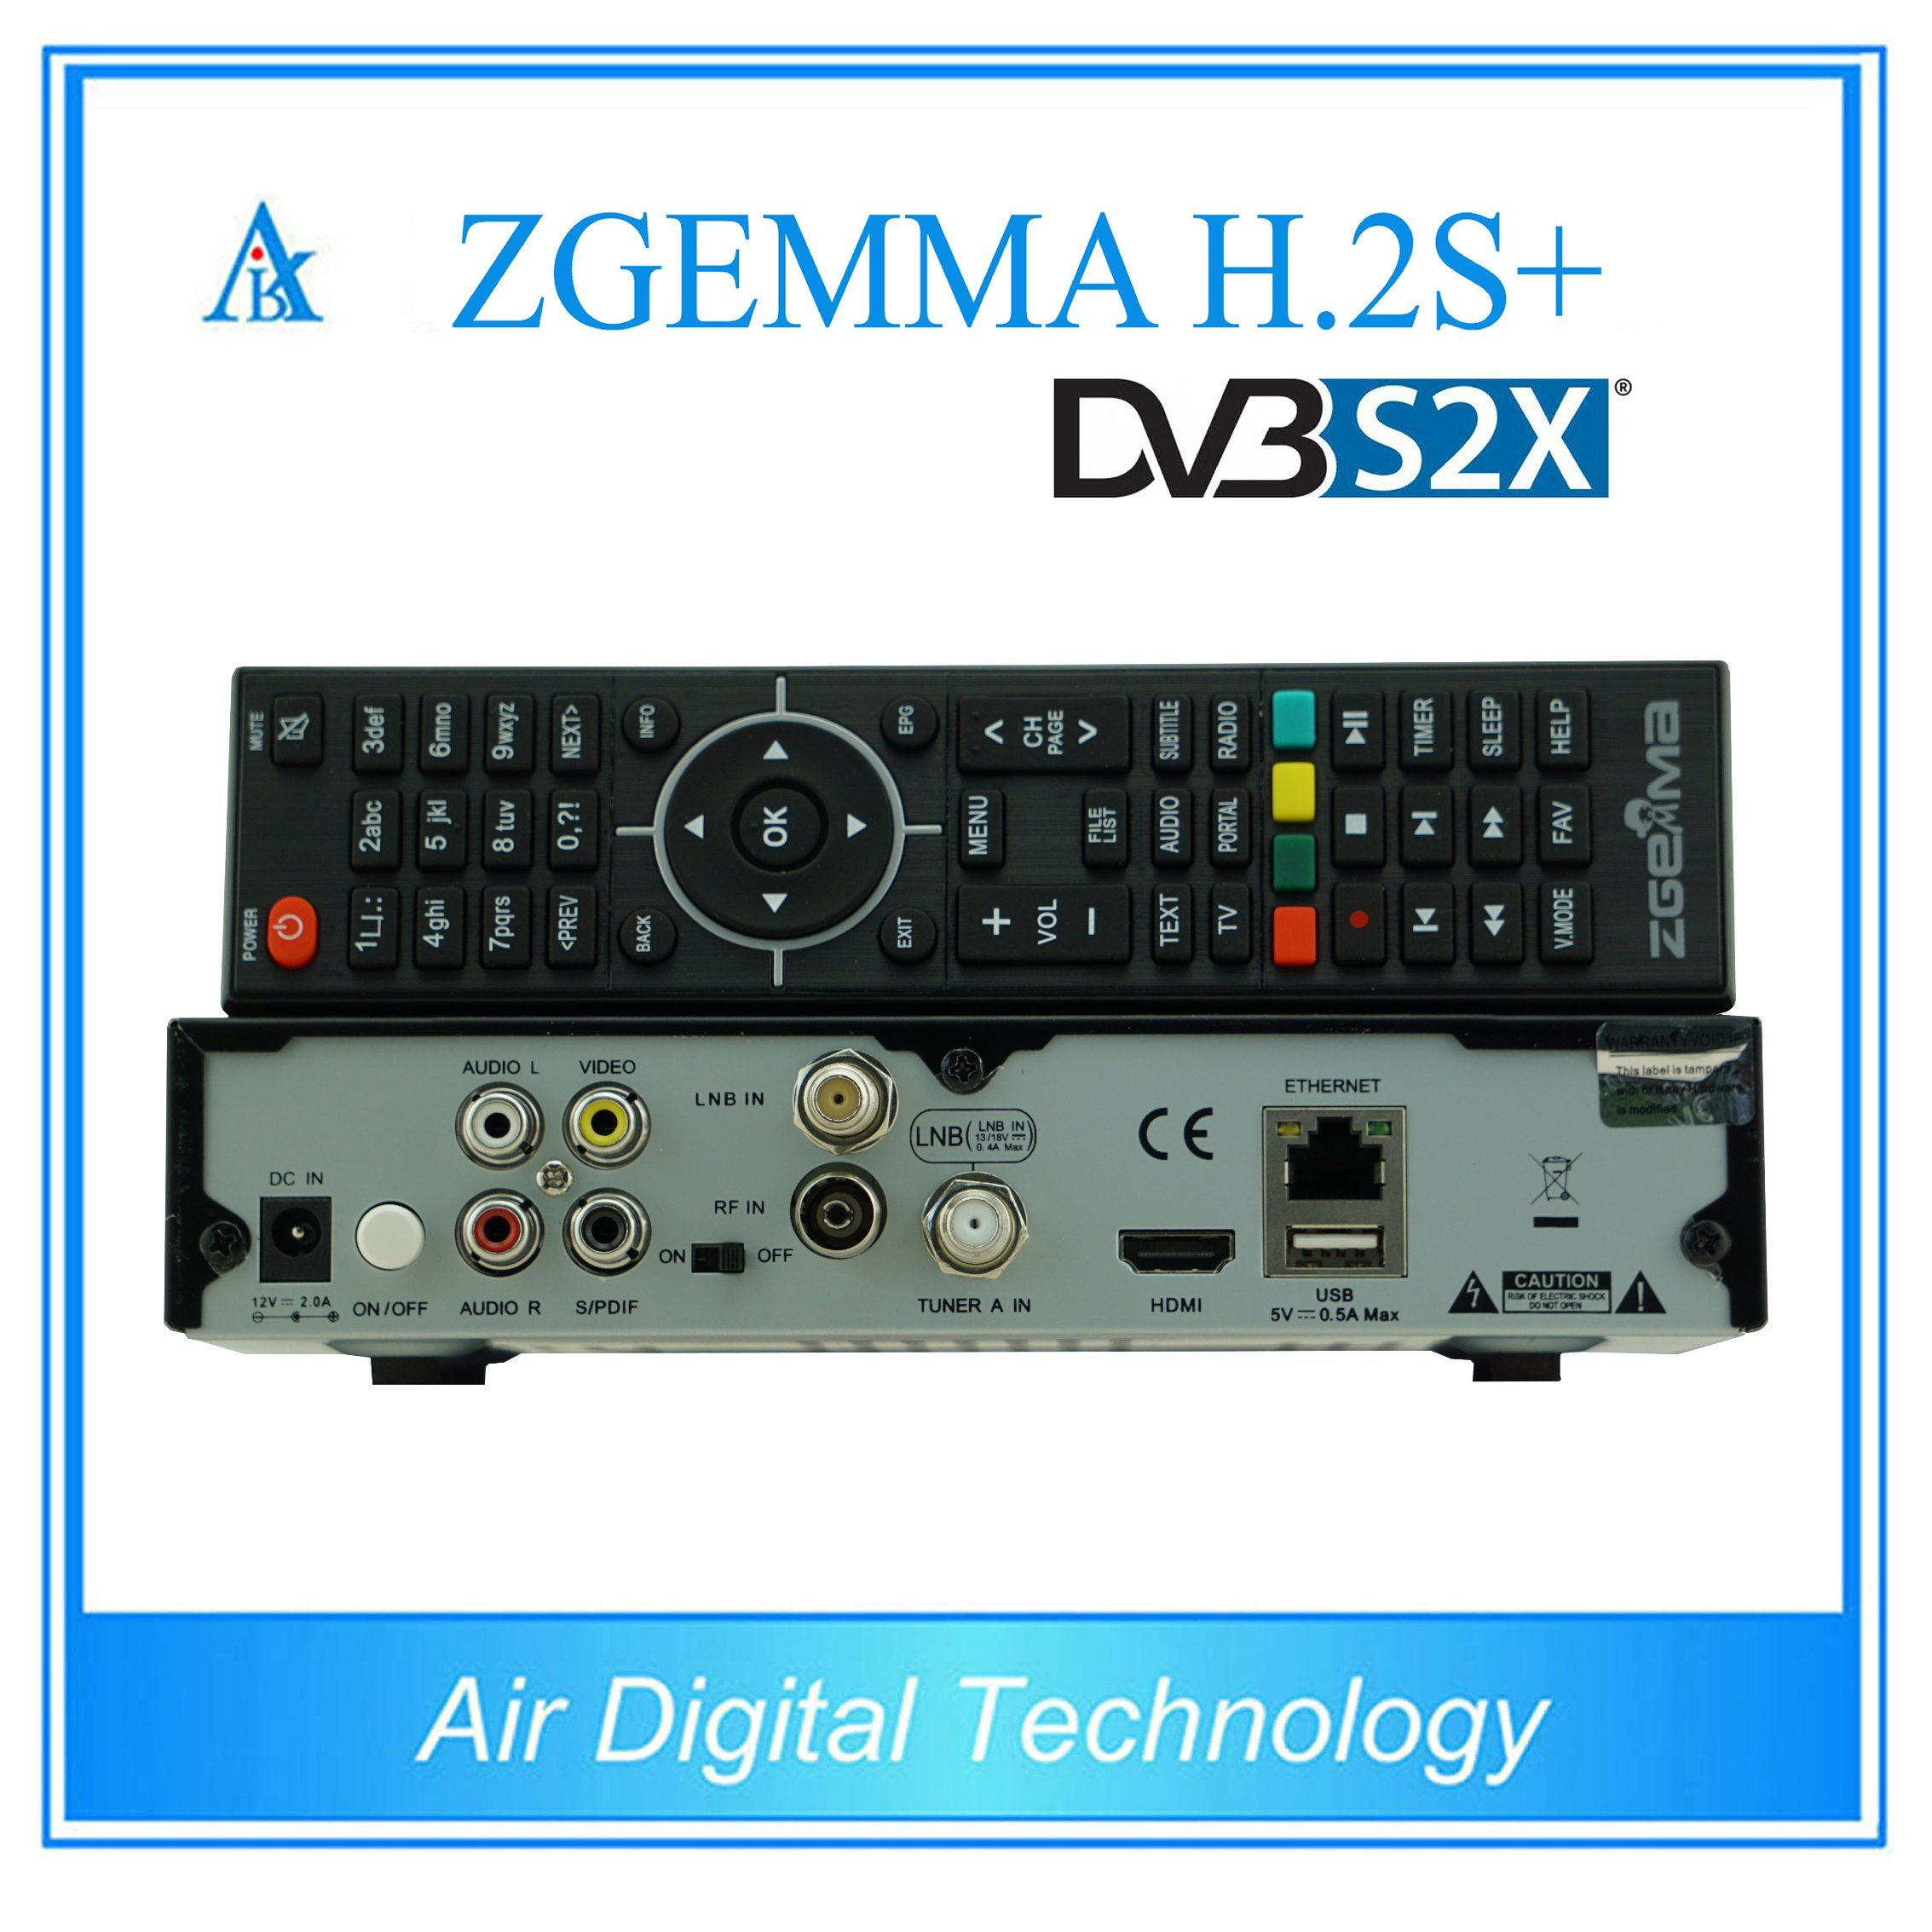 S2X TV Box DVB S2 + DVB S2X + DVB T2/C Zgemma H. 2s+ pictures & photos